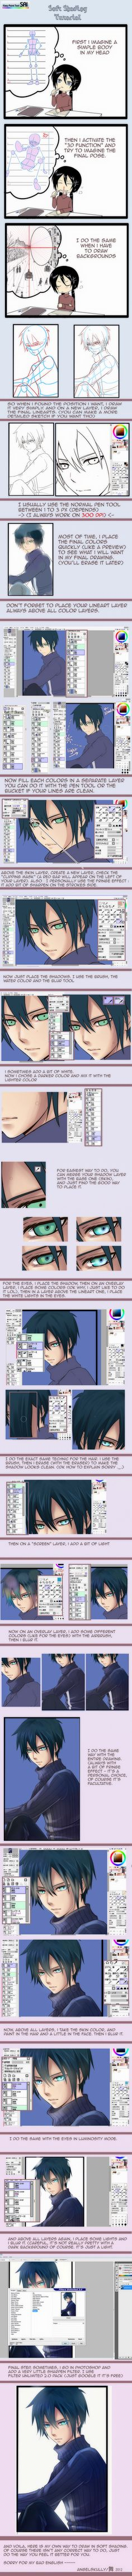 Soft Shading tutorial (Sai) + by kuro-mai.deviantart.com